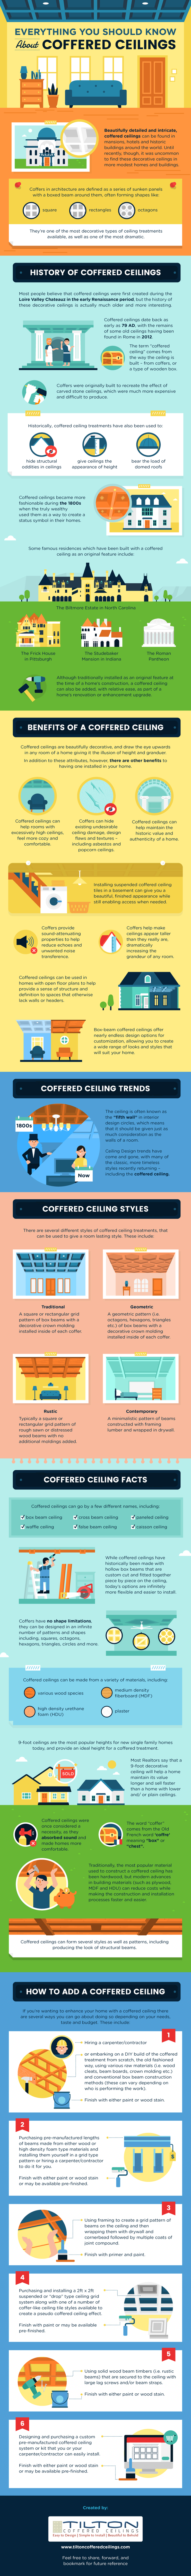 Coffered Ceilings - 5 Undeniable Benefits Of Installing Coffered Ceilings - Infographic Home Improvements interior decorating Latest Posts